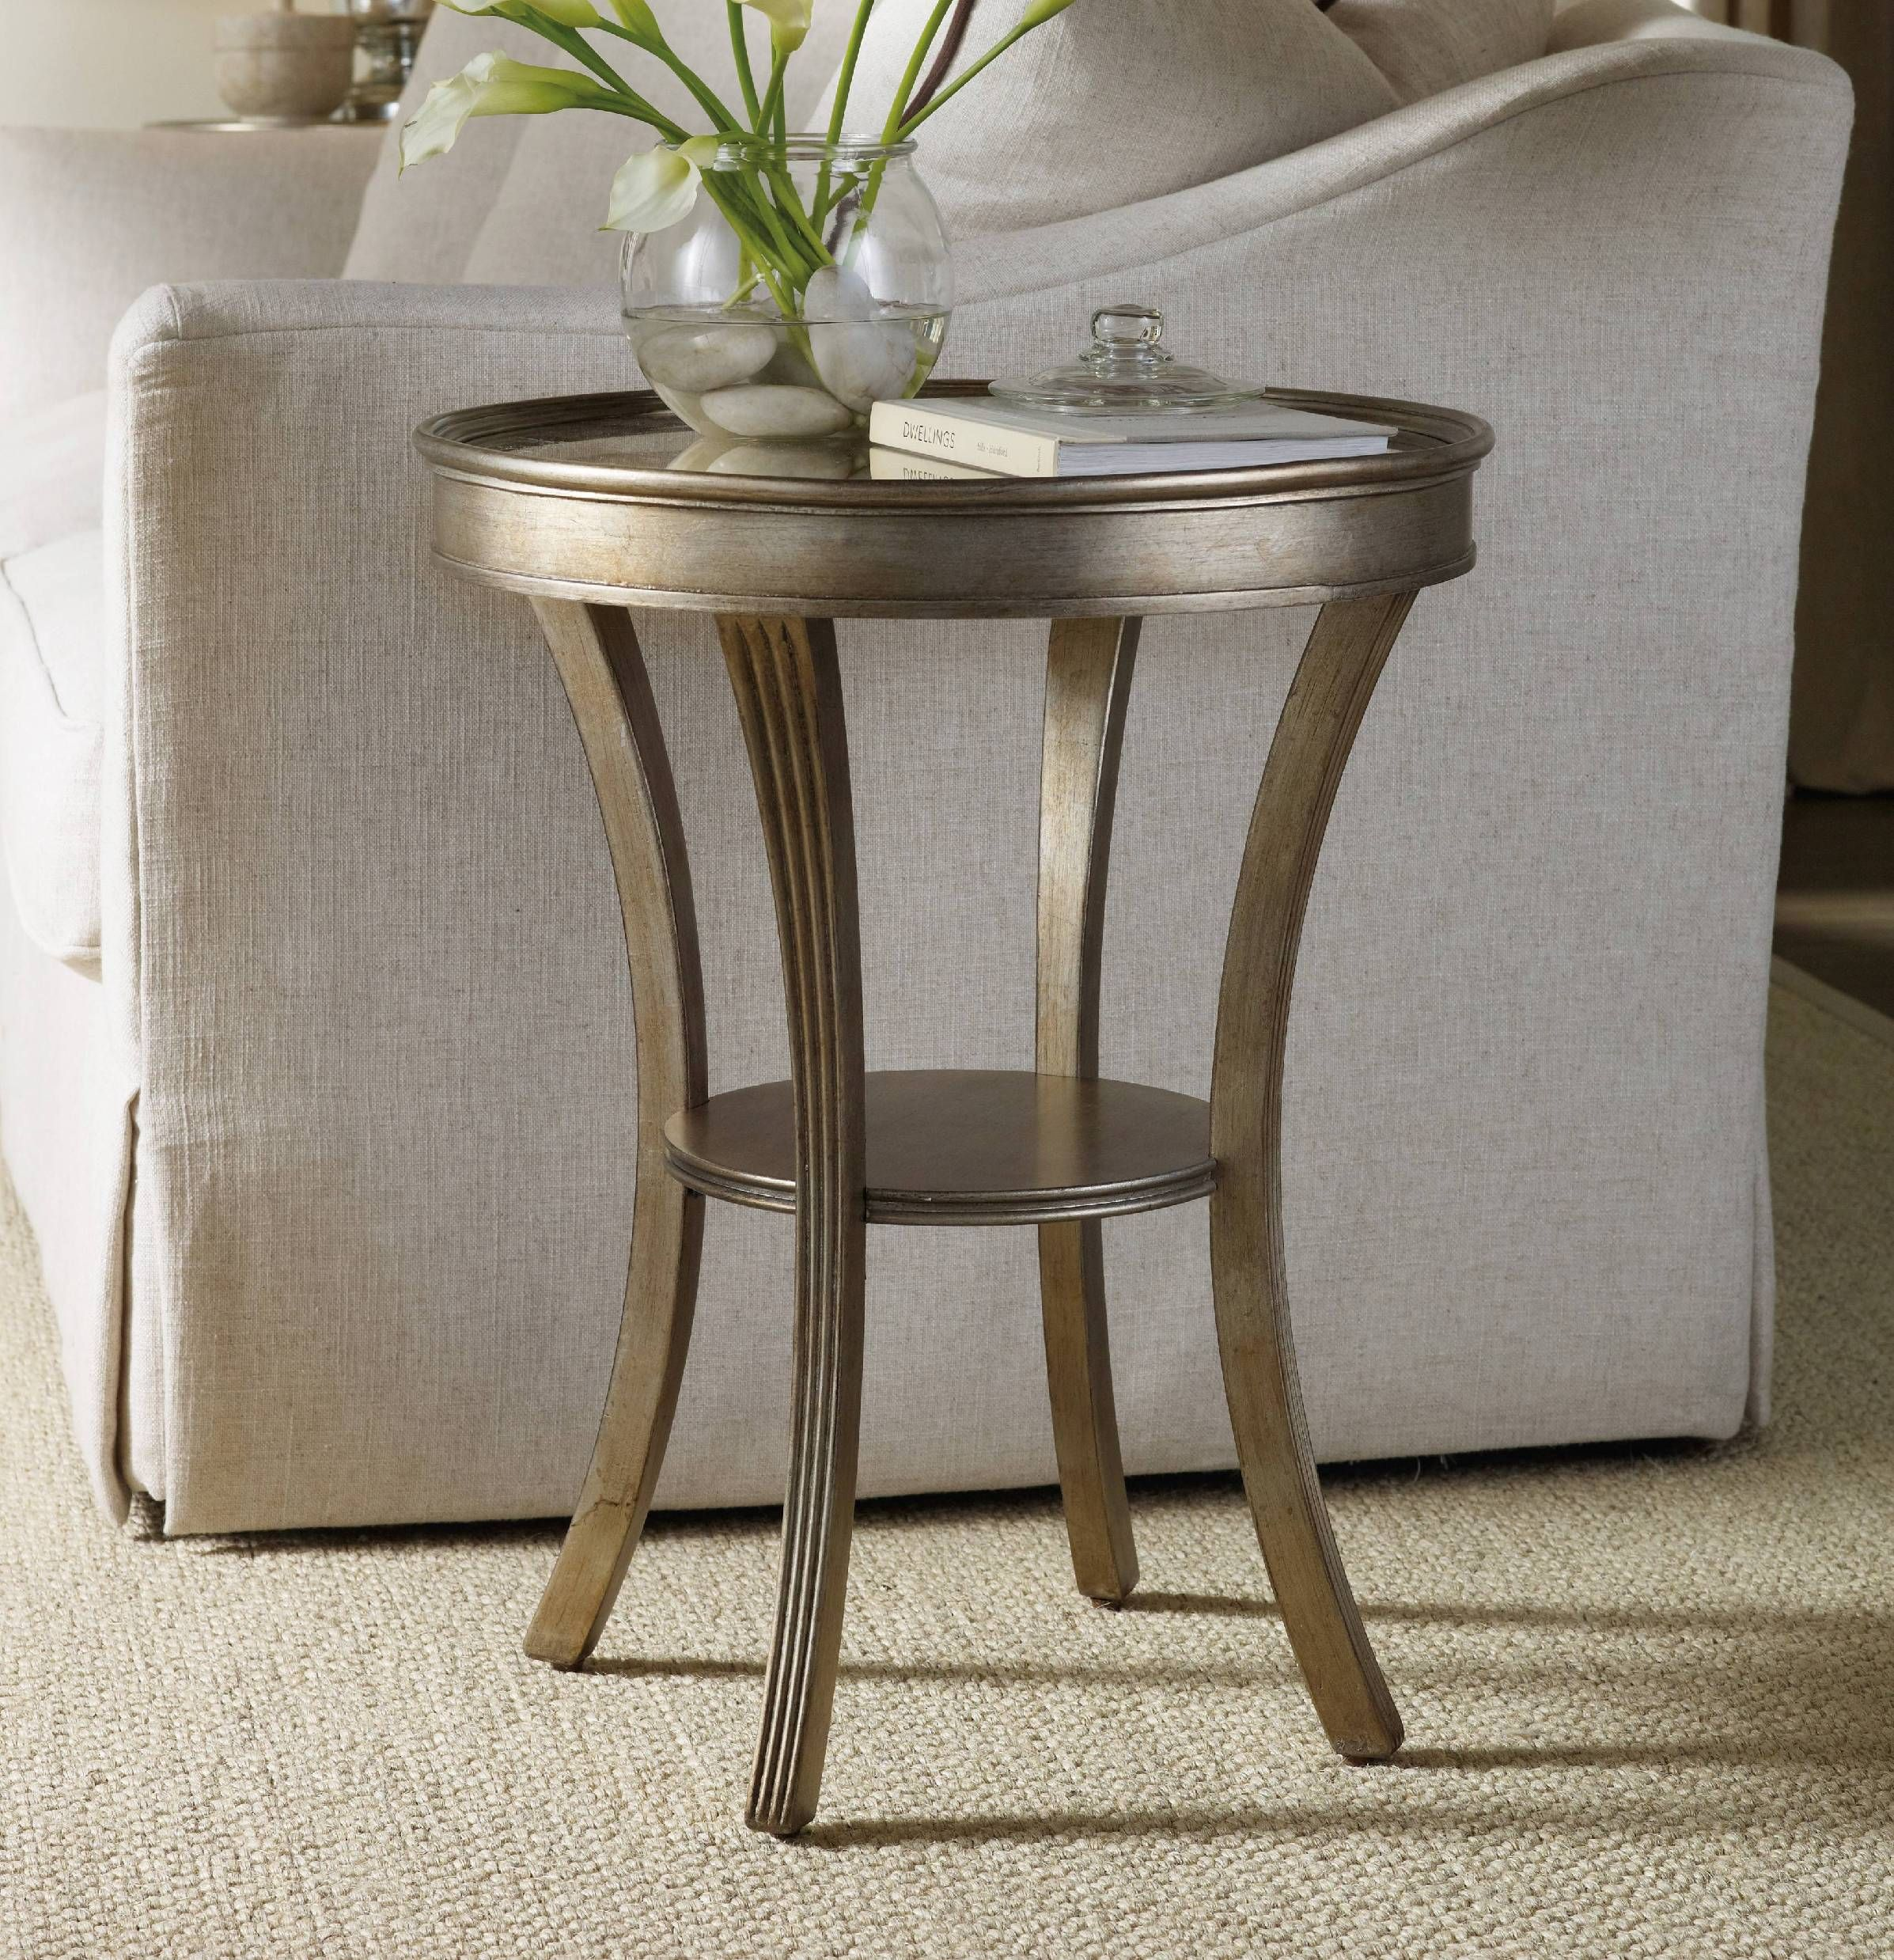 astonishing small accent tables for living room table gold modern outdoor kijiji target antique decorative furniture white round tall full size grey side lamp chest kohls end